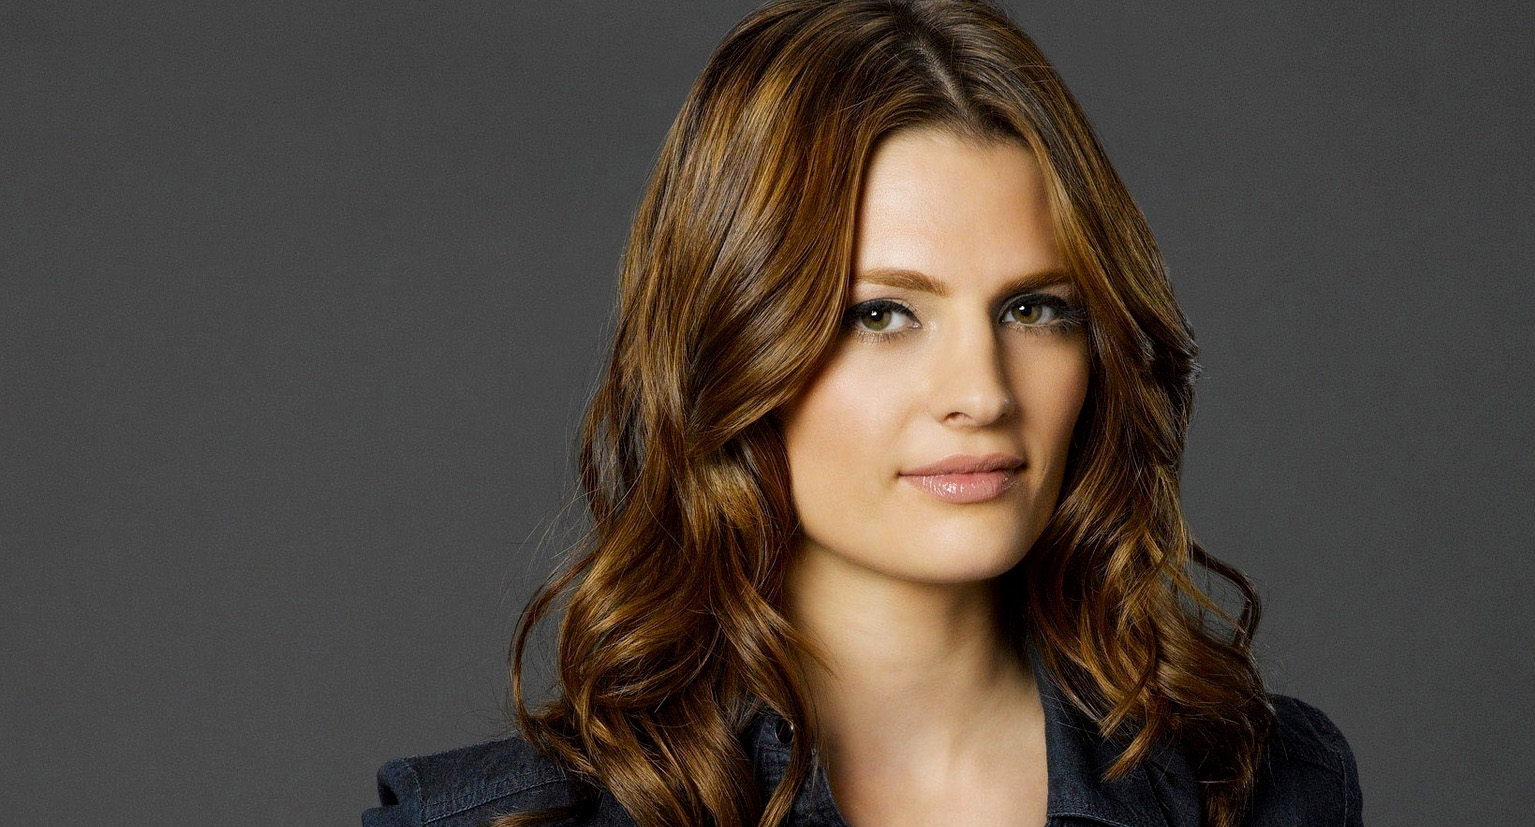 get to know about kris brkljac stana katic�s husband in